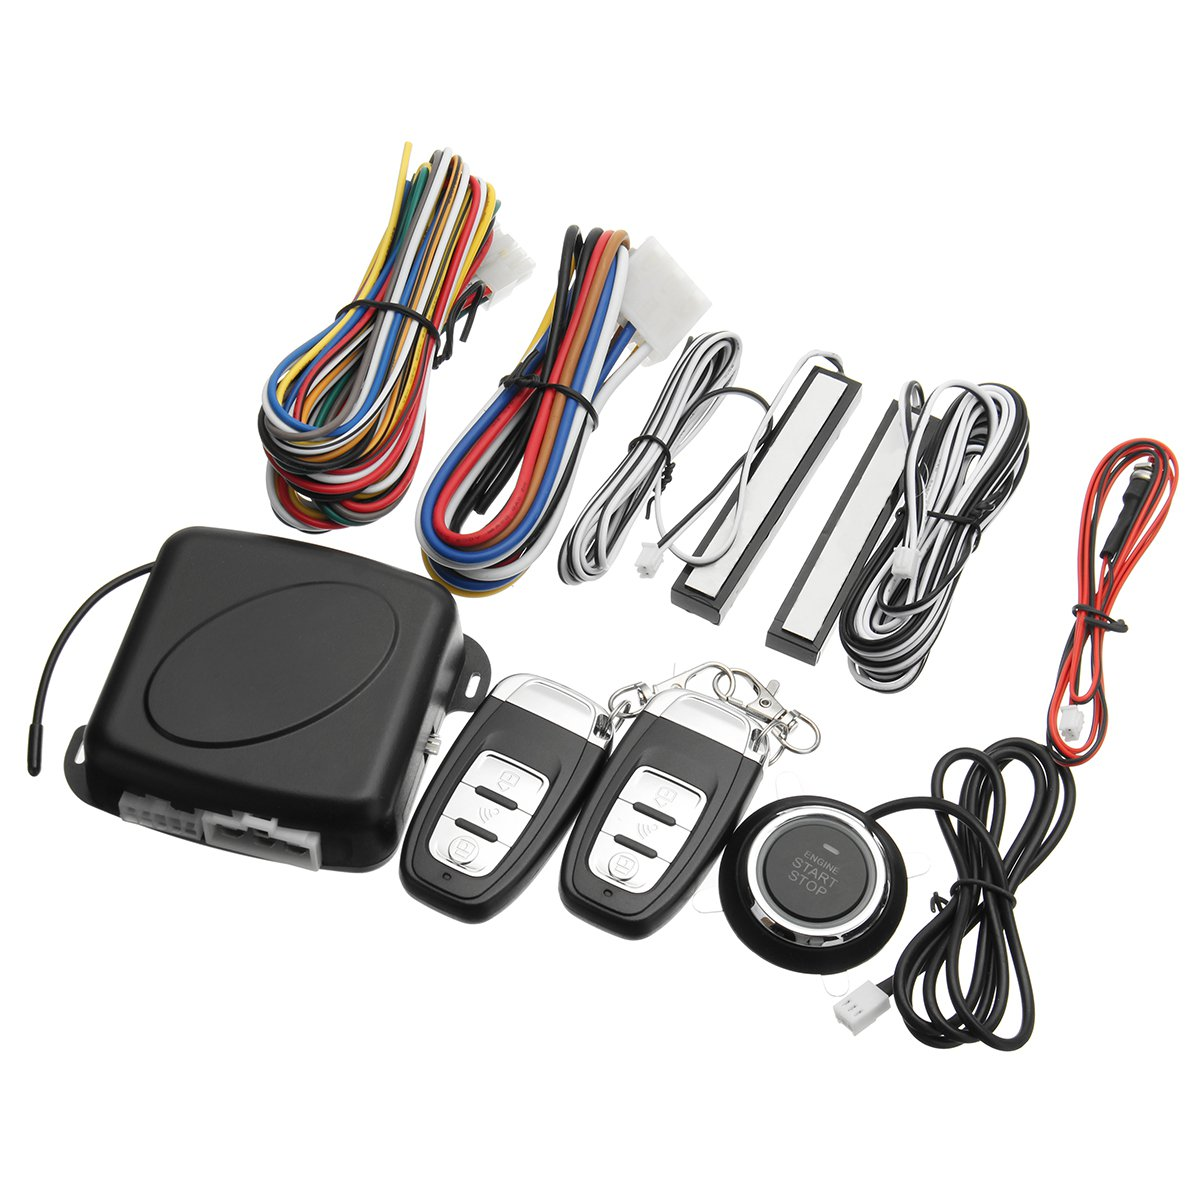 Keyless Entry Engine Push Start Alarm System Peps Remote